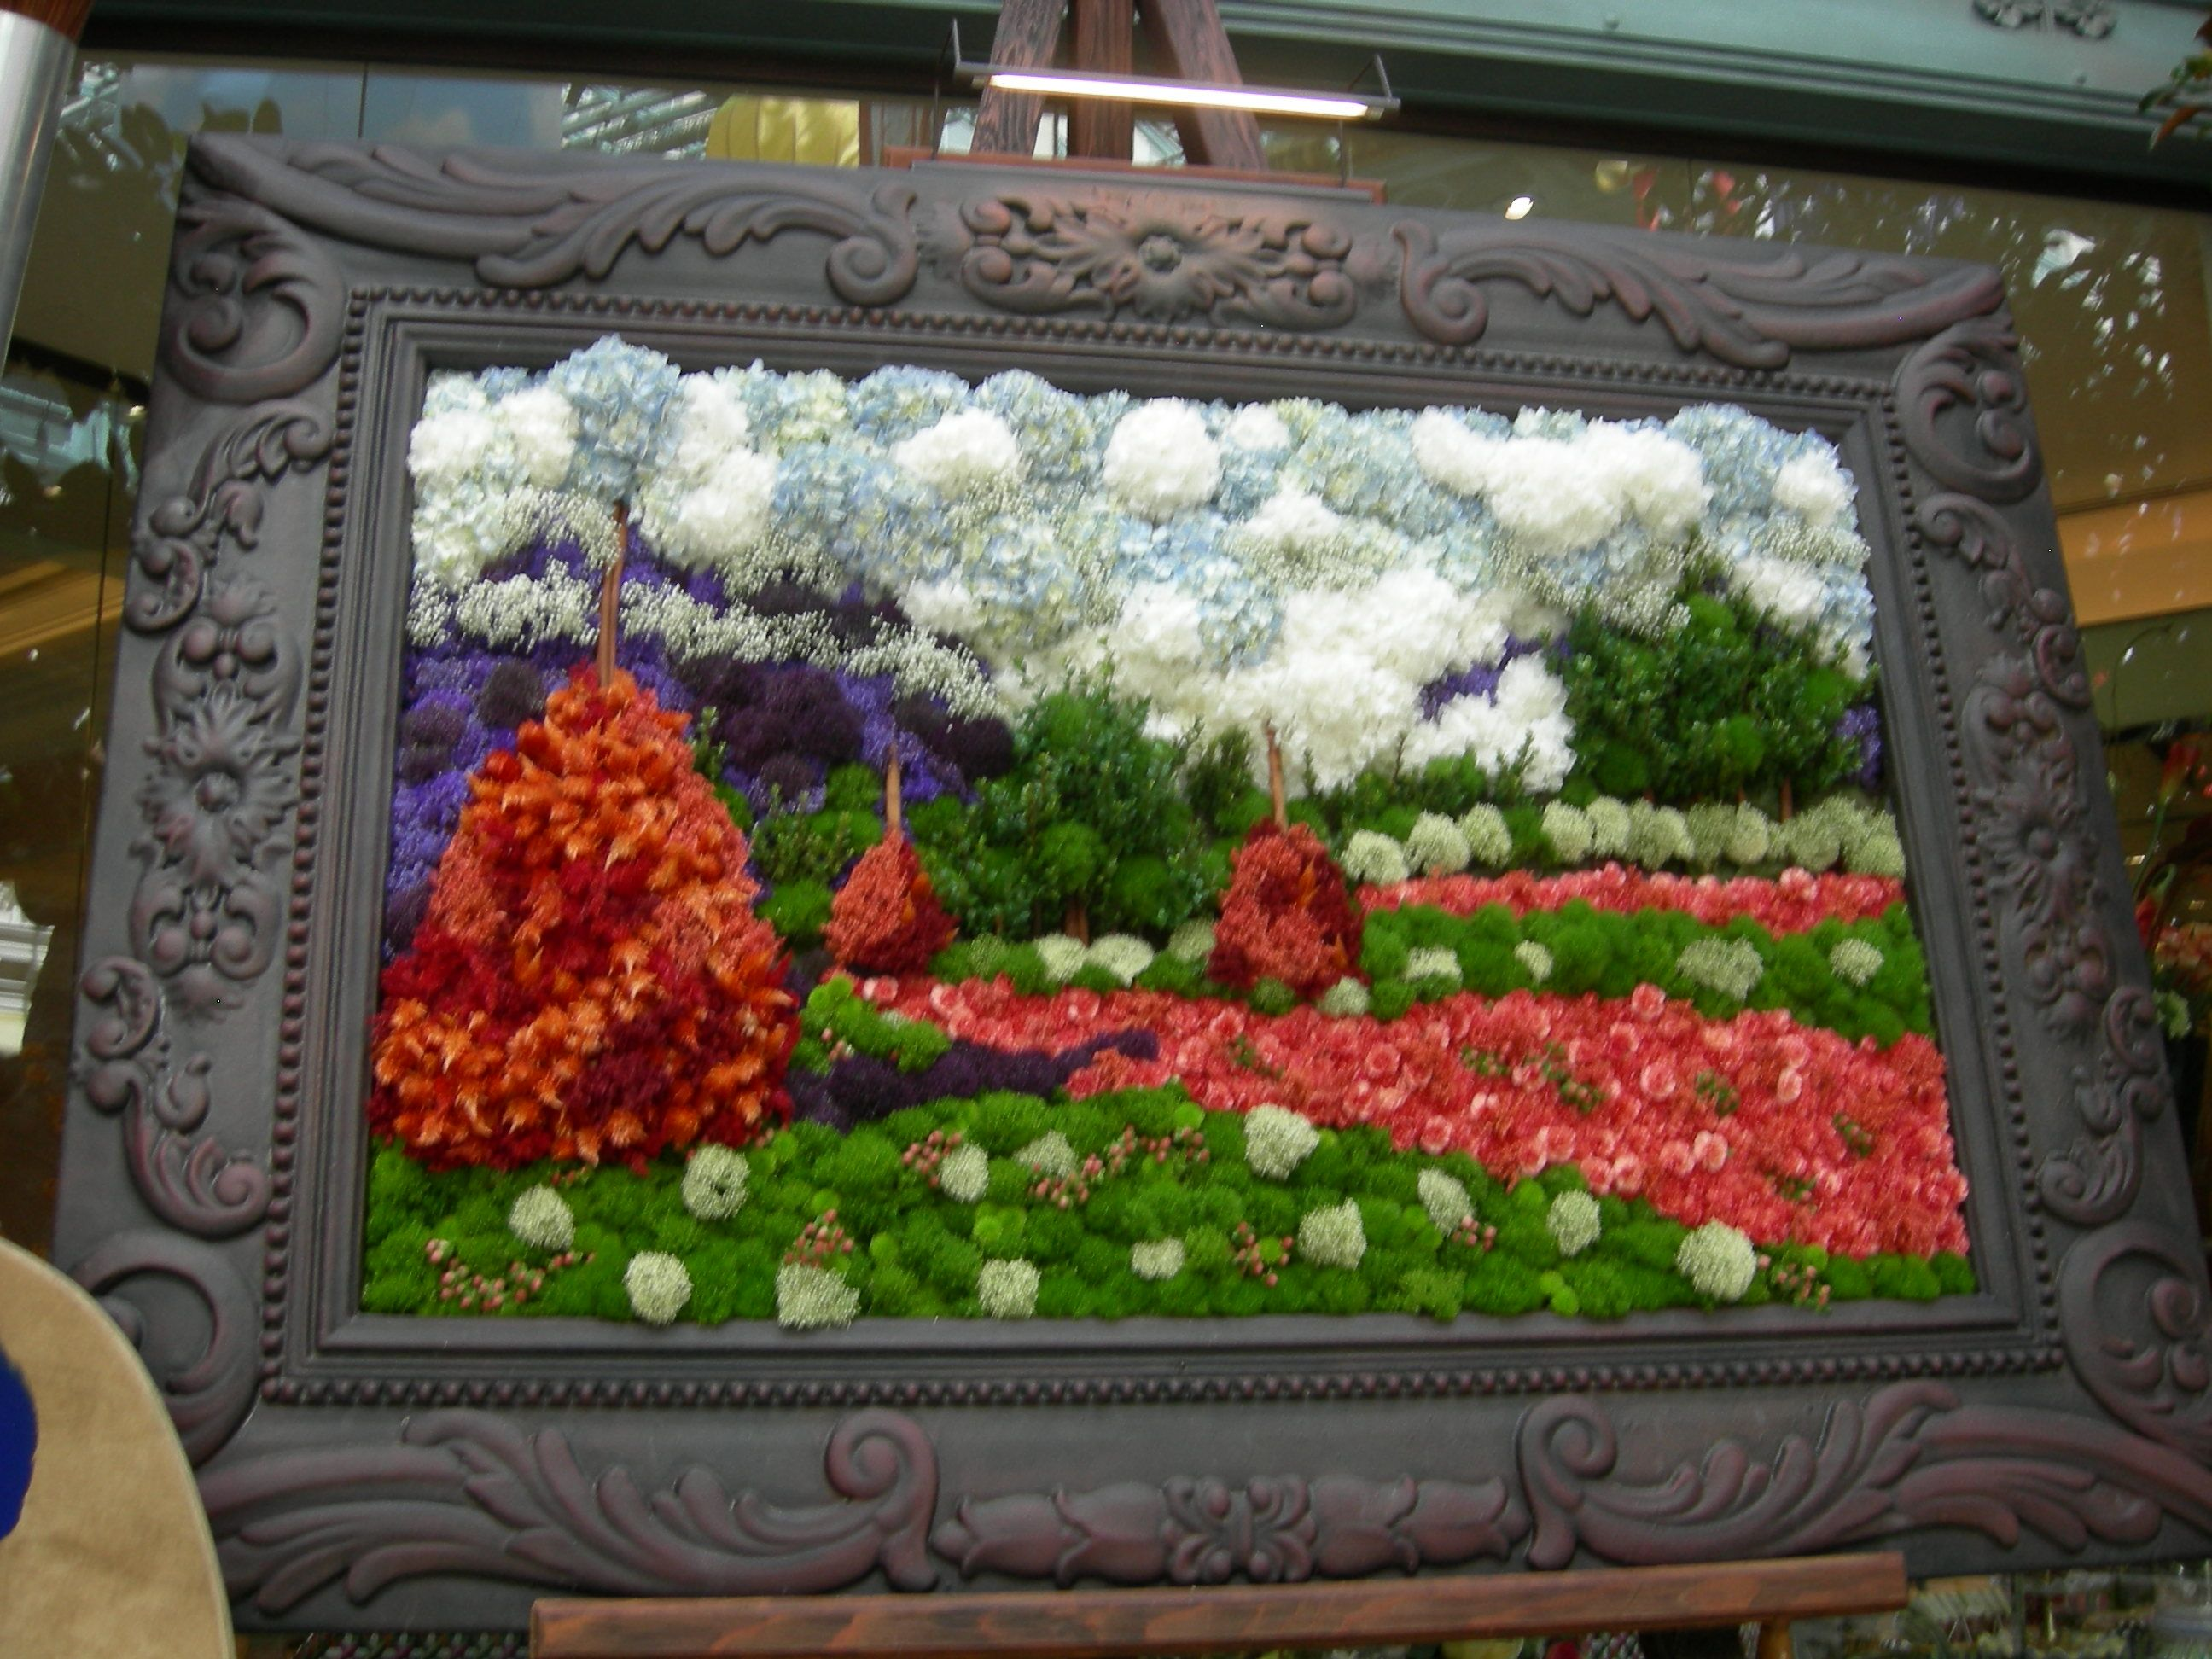 This picture is made of nothing but flowers....it was at the conservatory...I believe at the Bellagio in Vegas...I took the pic.